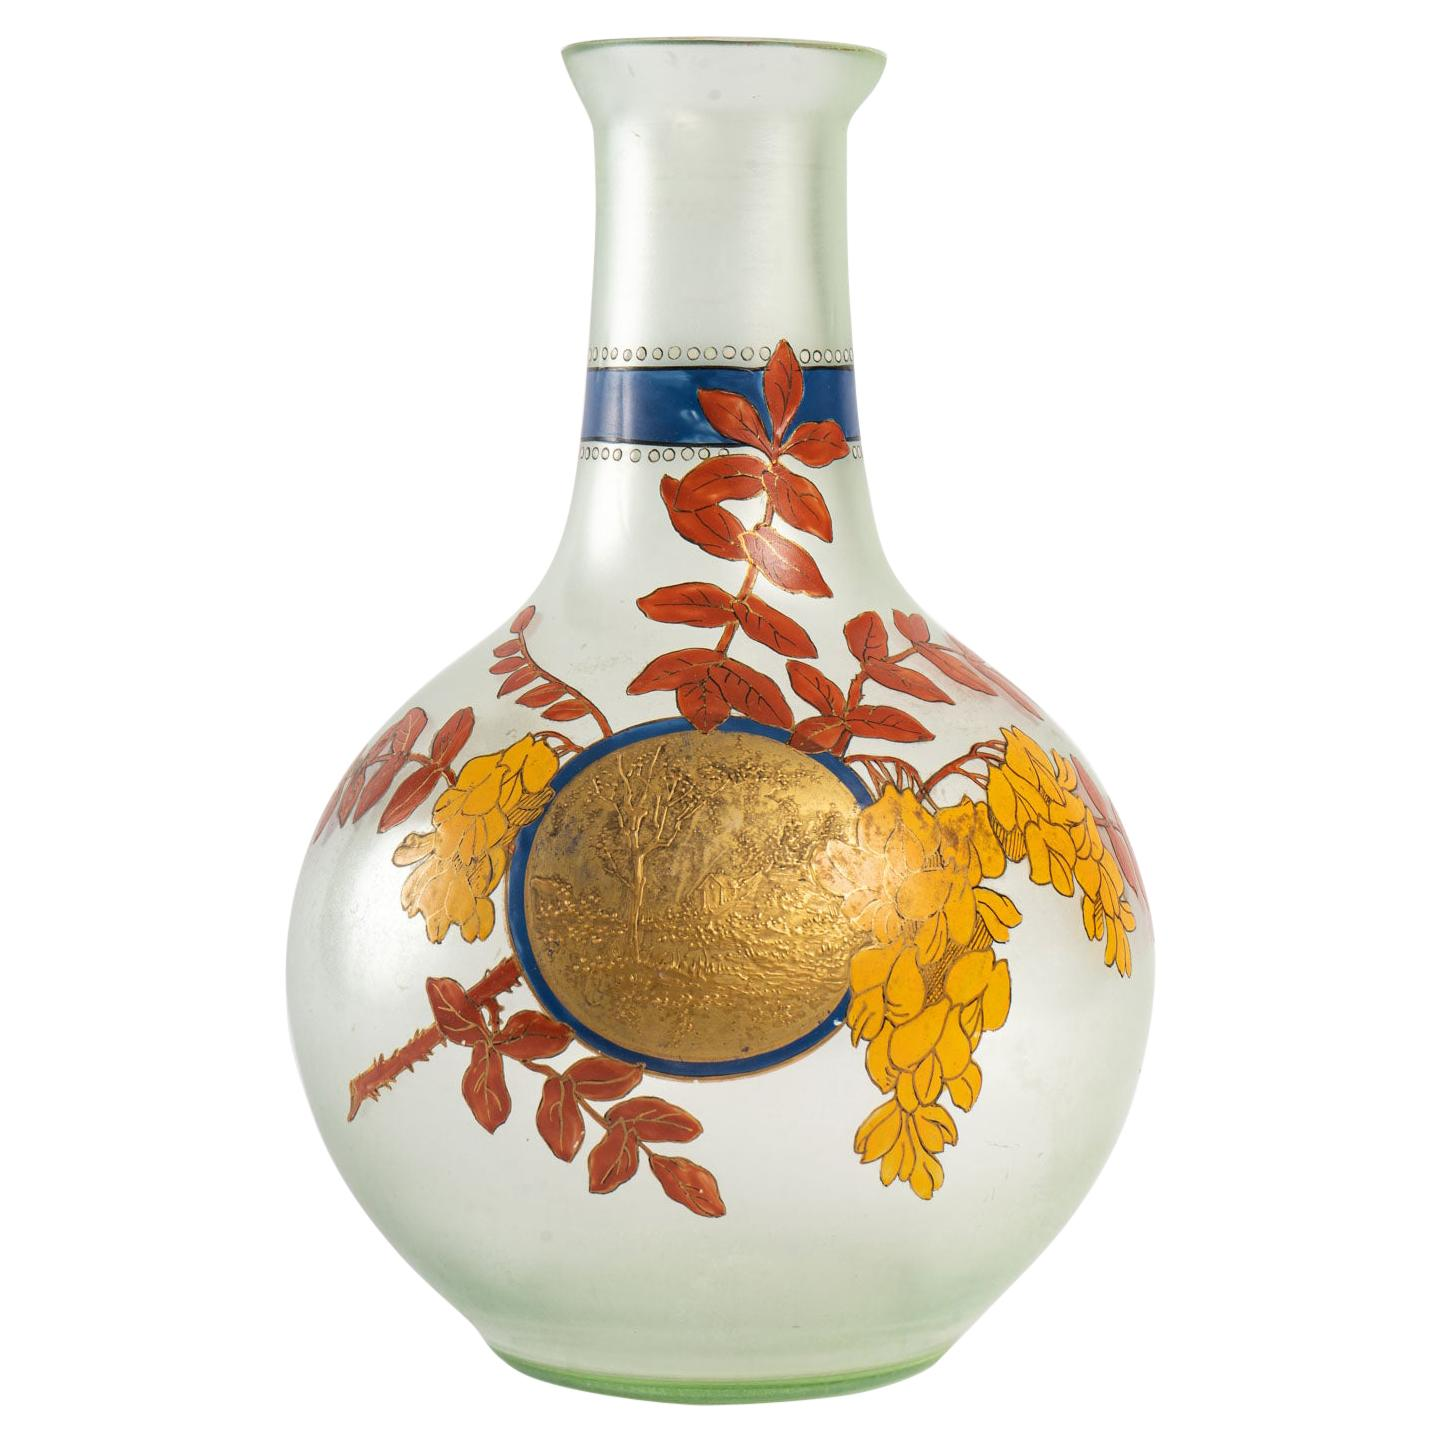 Enamelled Glass Vase, Early 20th Century